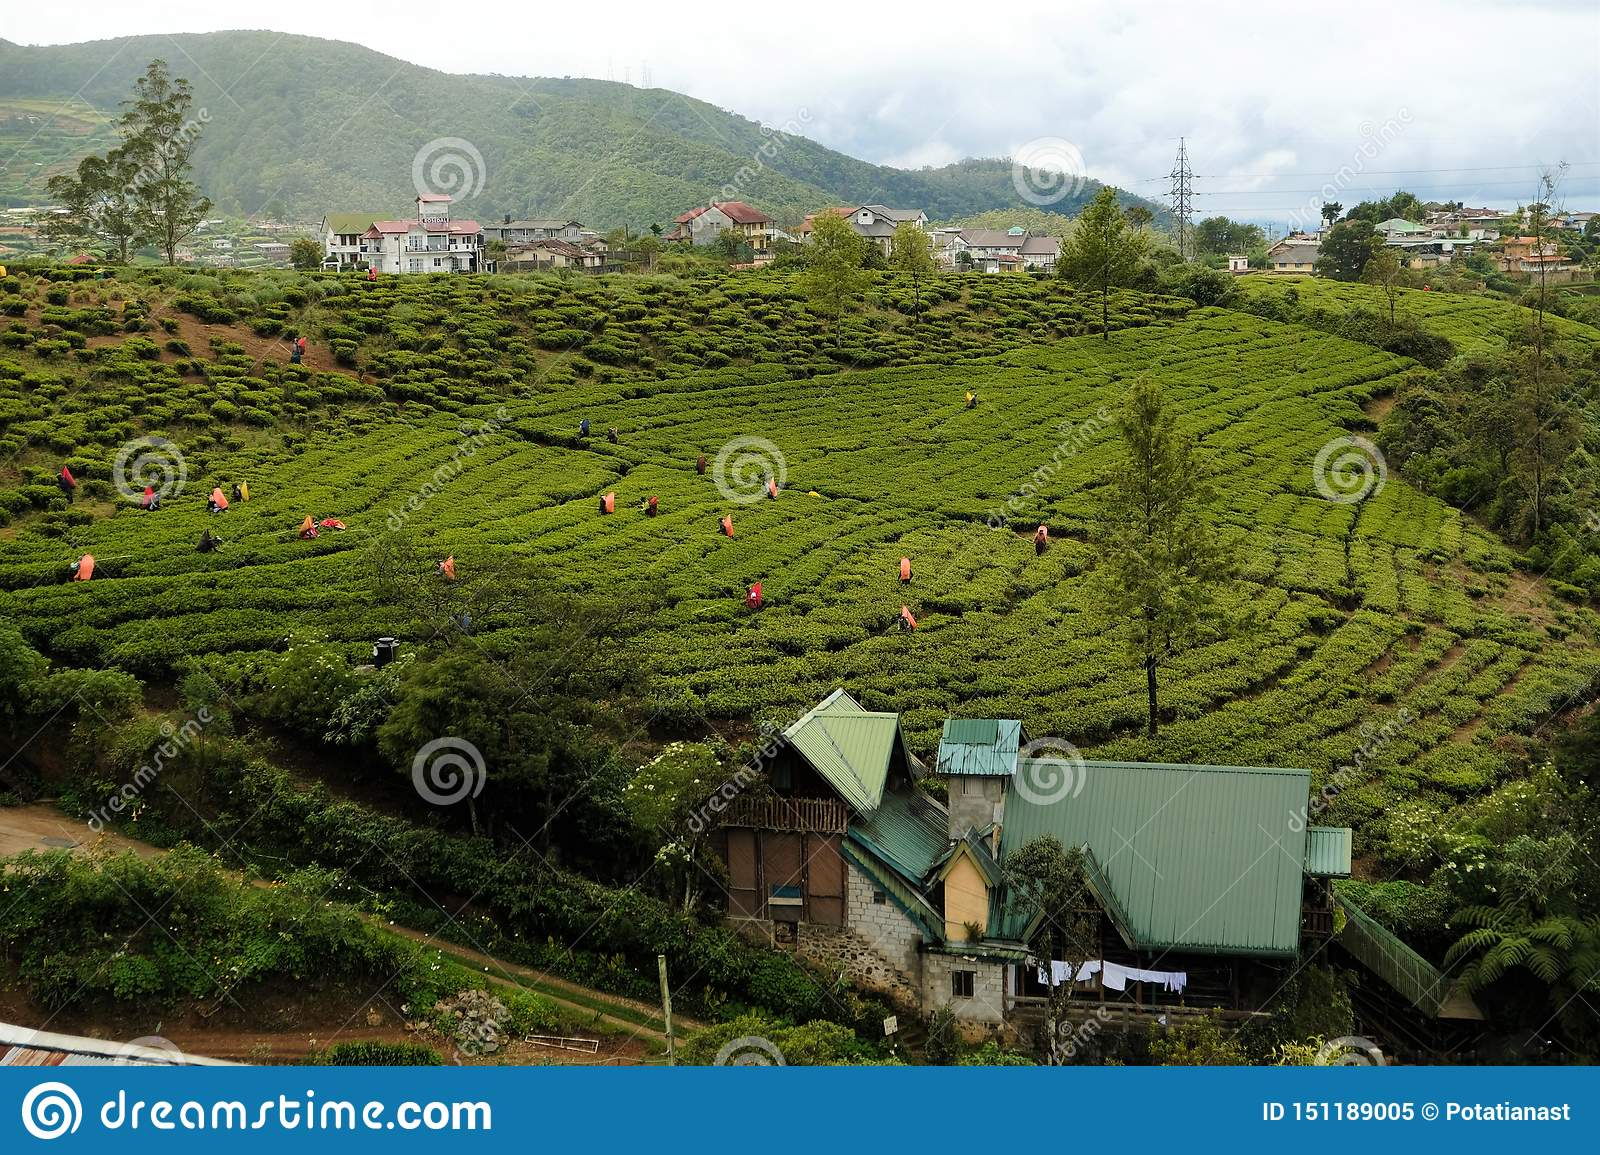 Sri Lanka`s famous blue tea plantations workers